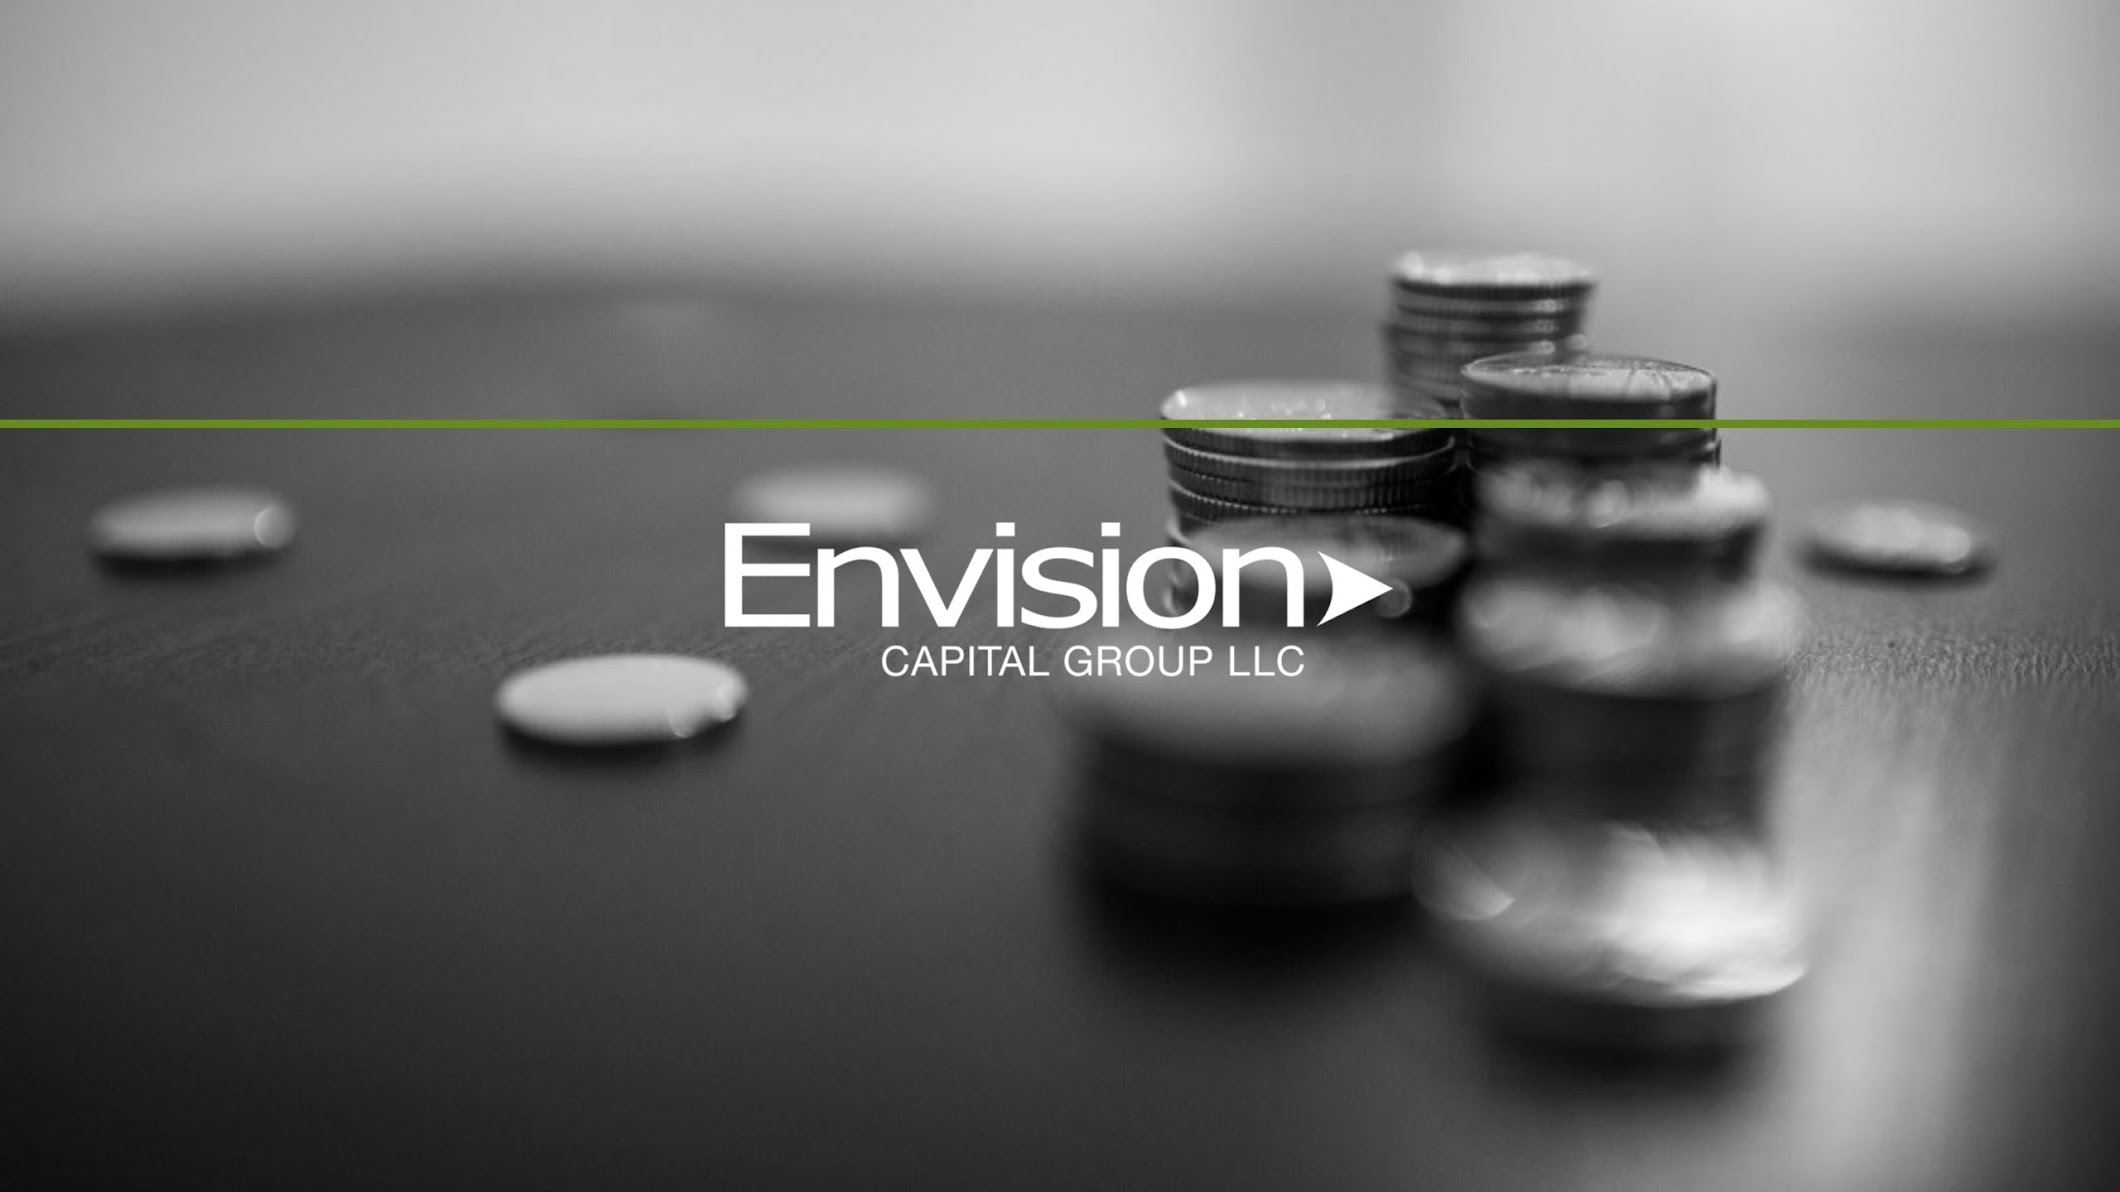 Envision Capital Group LLC